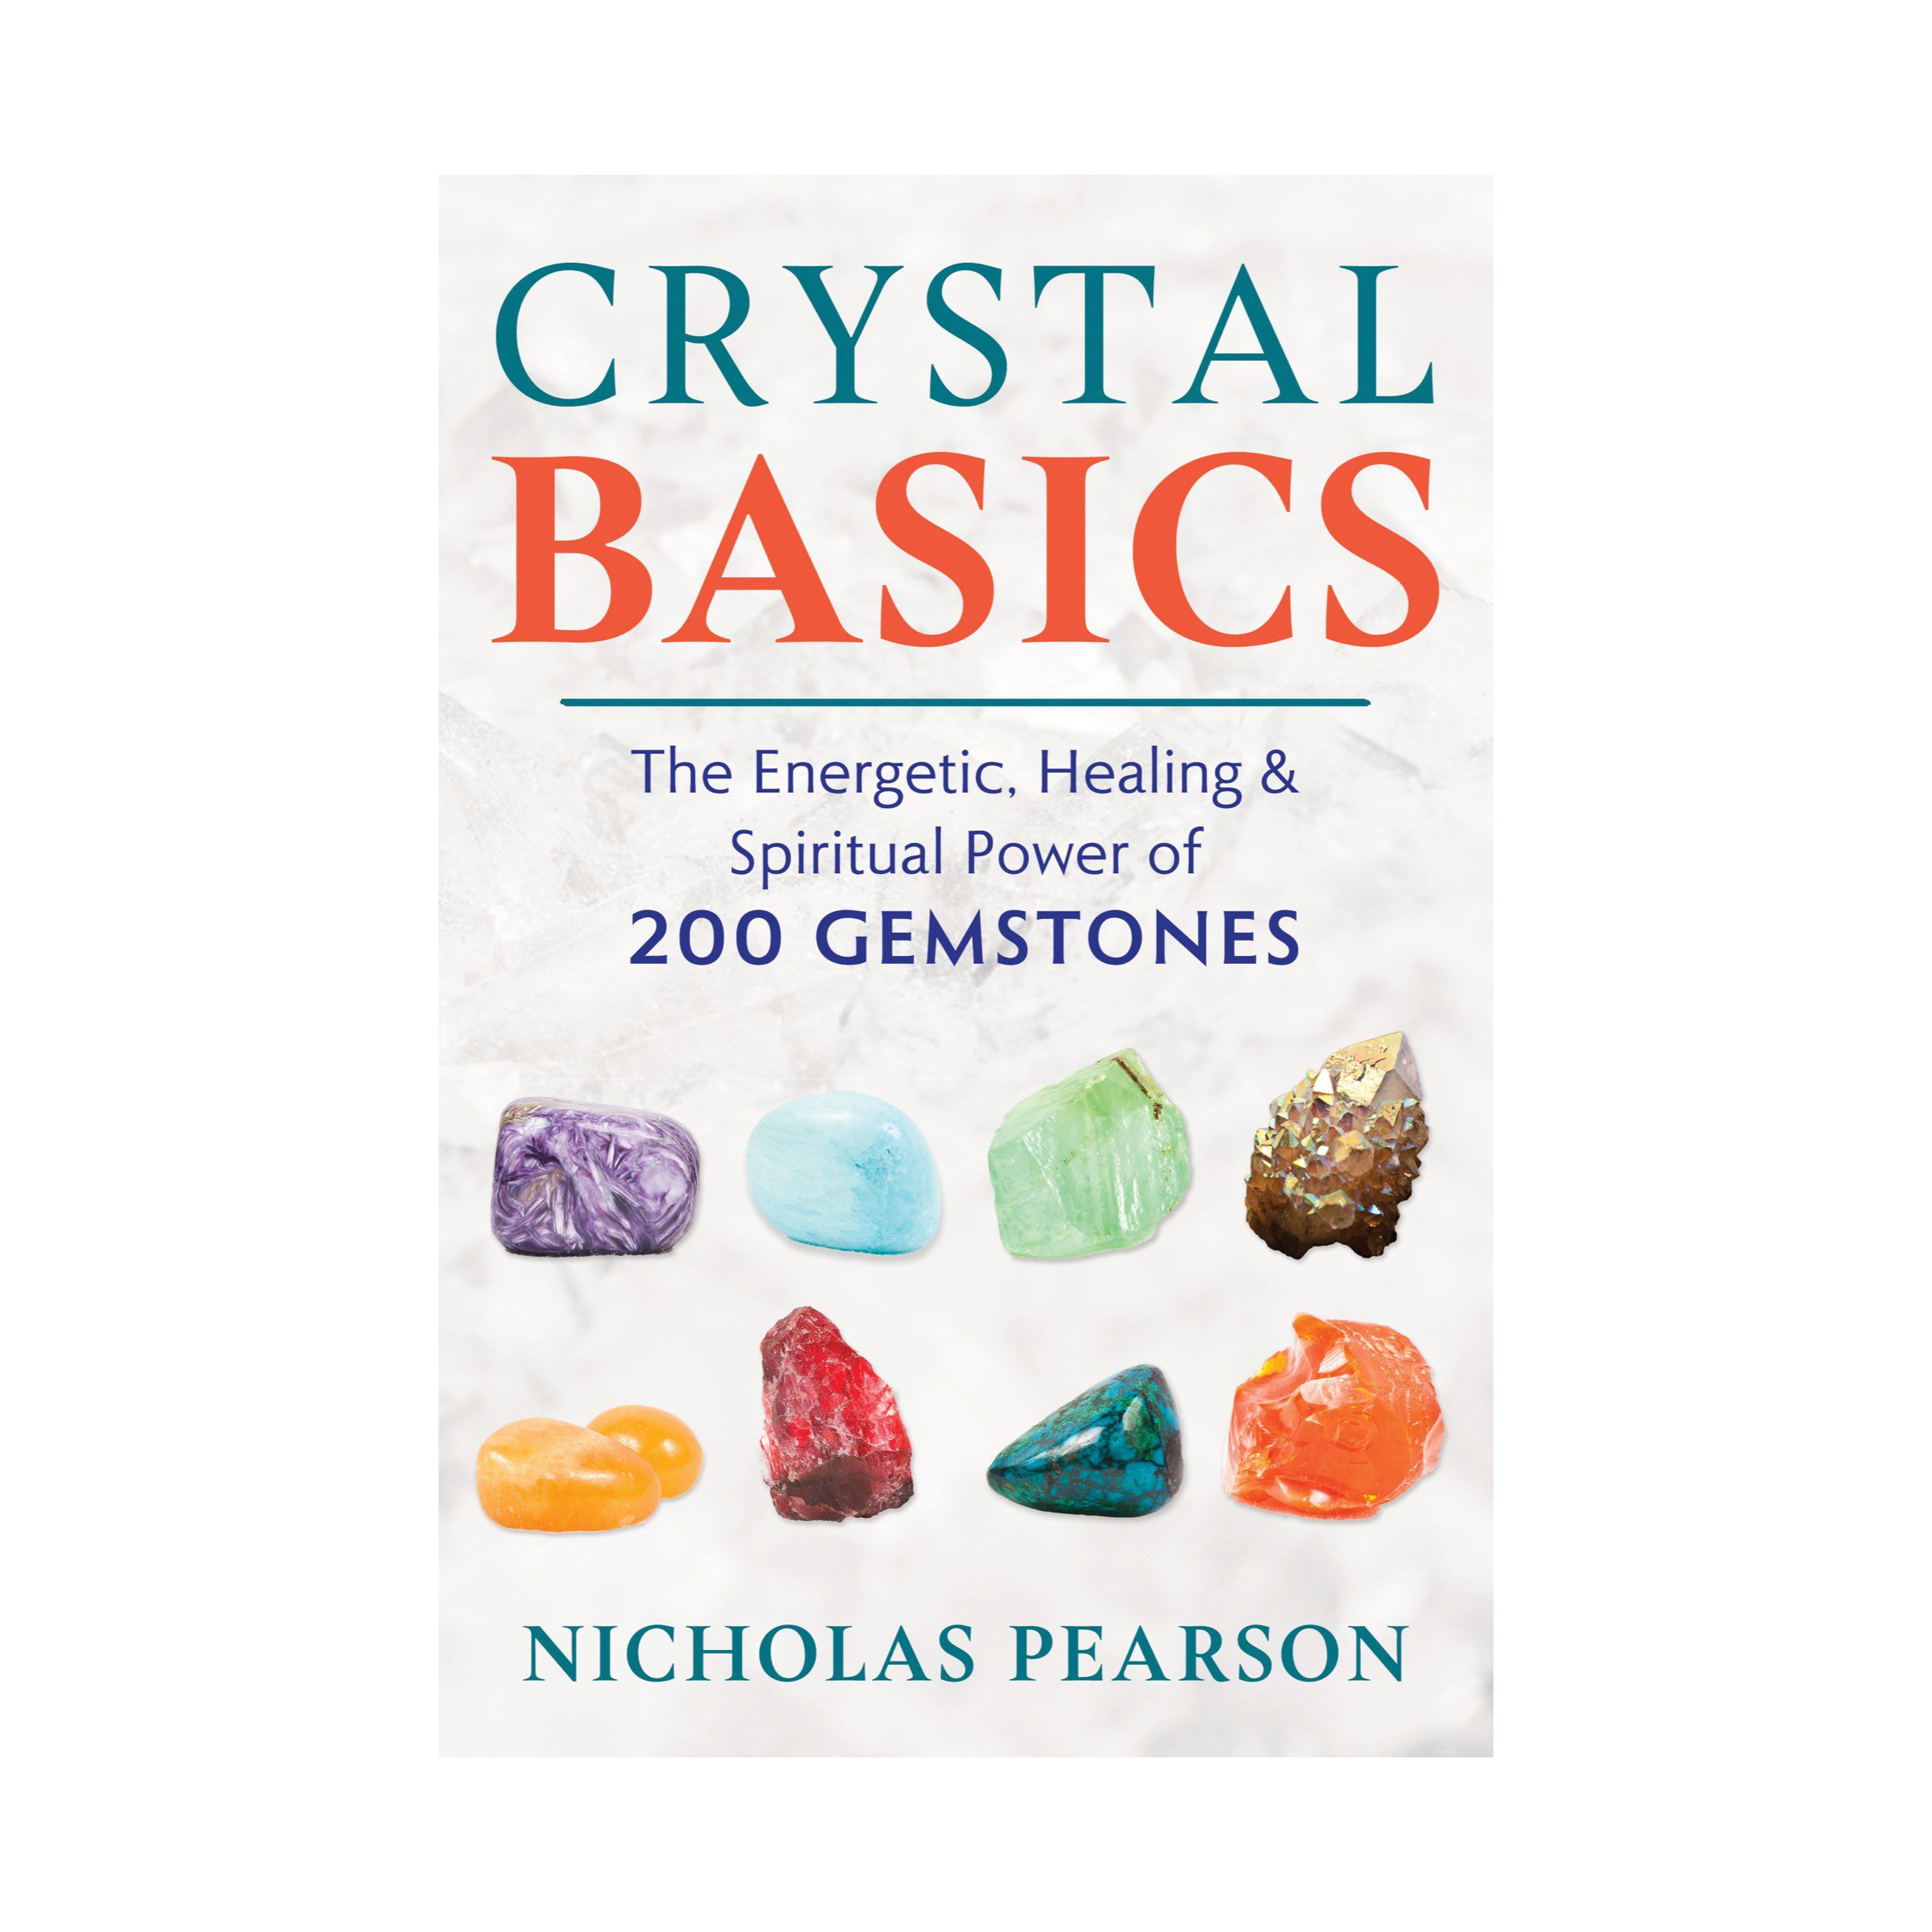 Ethically sourced crystals with Nicholas Pearson. How can we find crystals that are mined ethically, conscious of the earth and the miners involved? Nicholas shares his perspective in episode 15 of the For Animals For Earth Podcast.